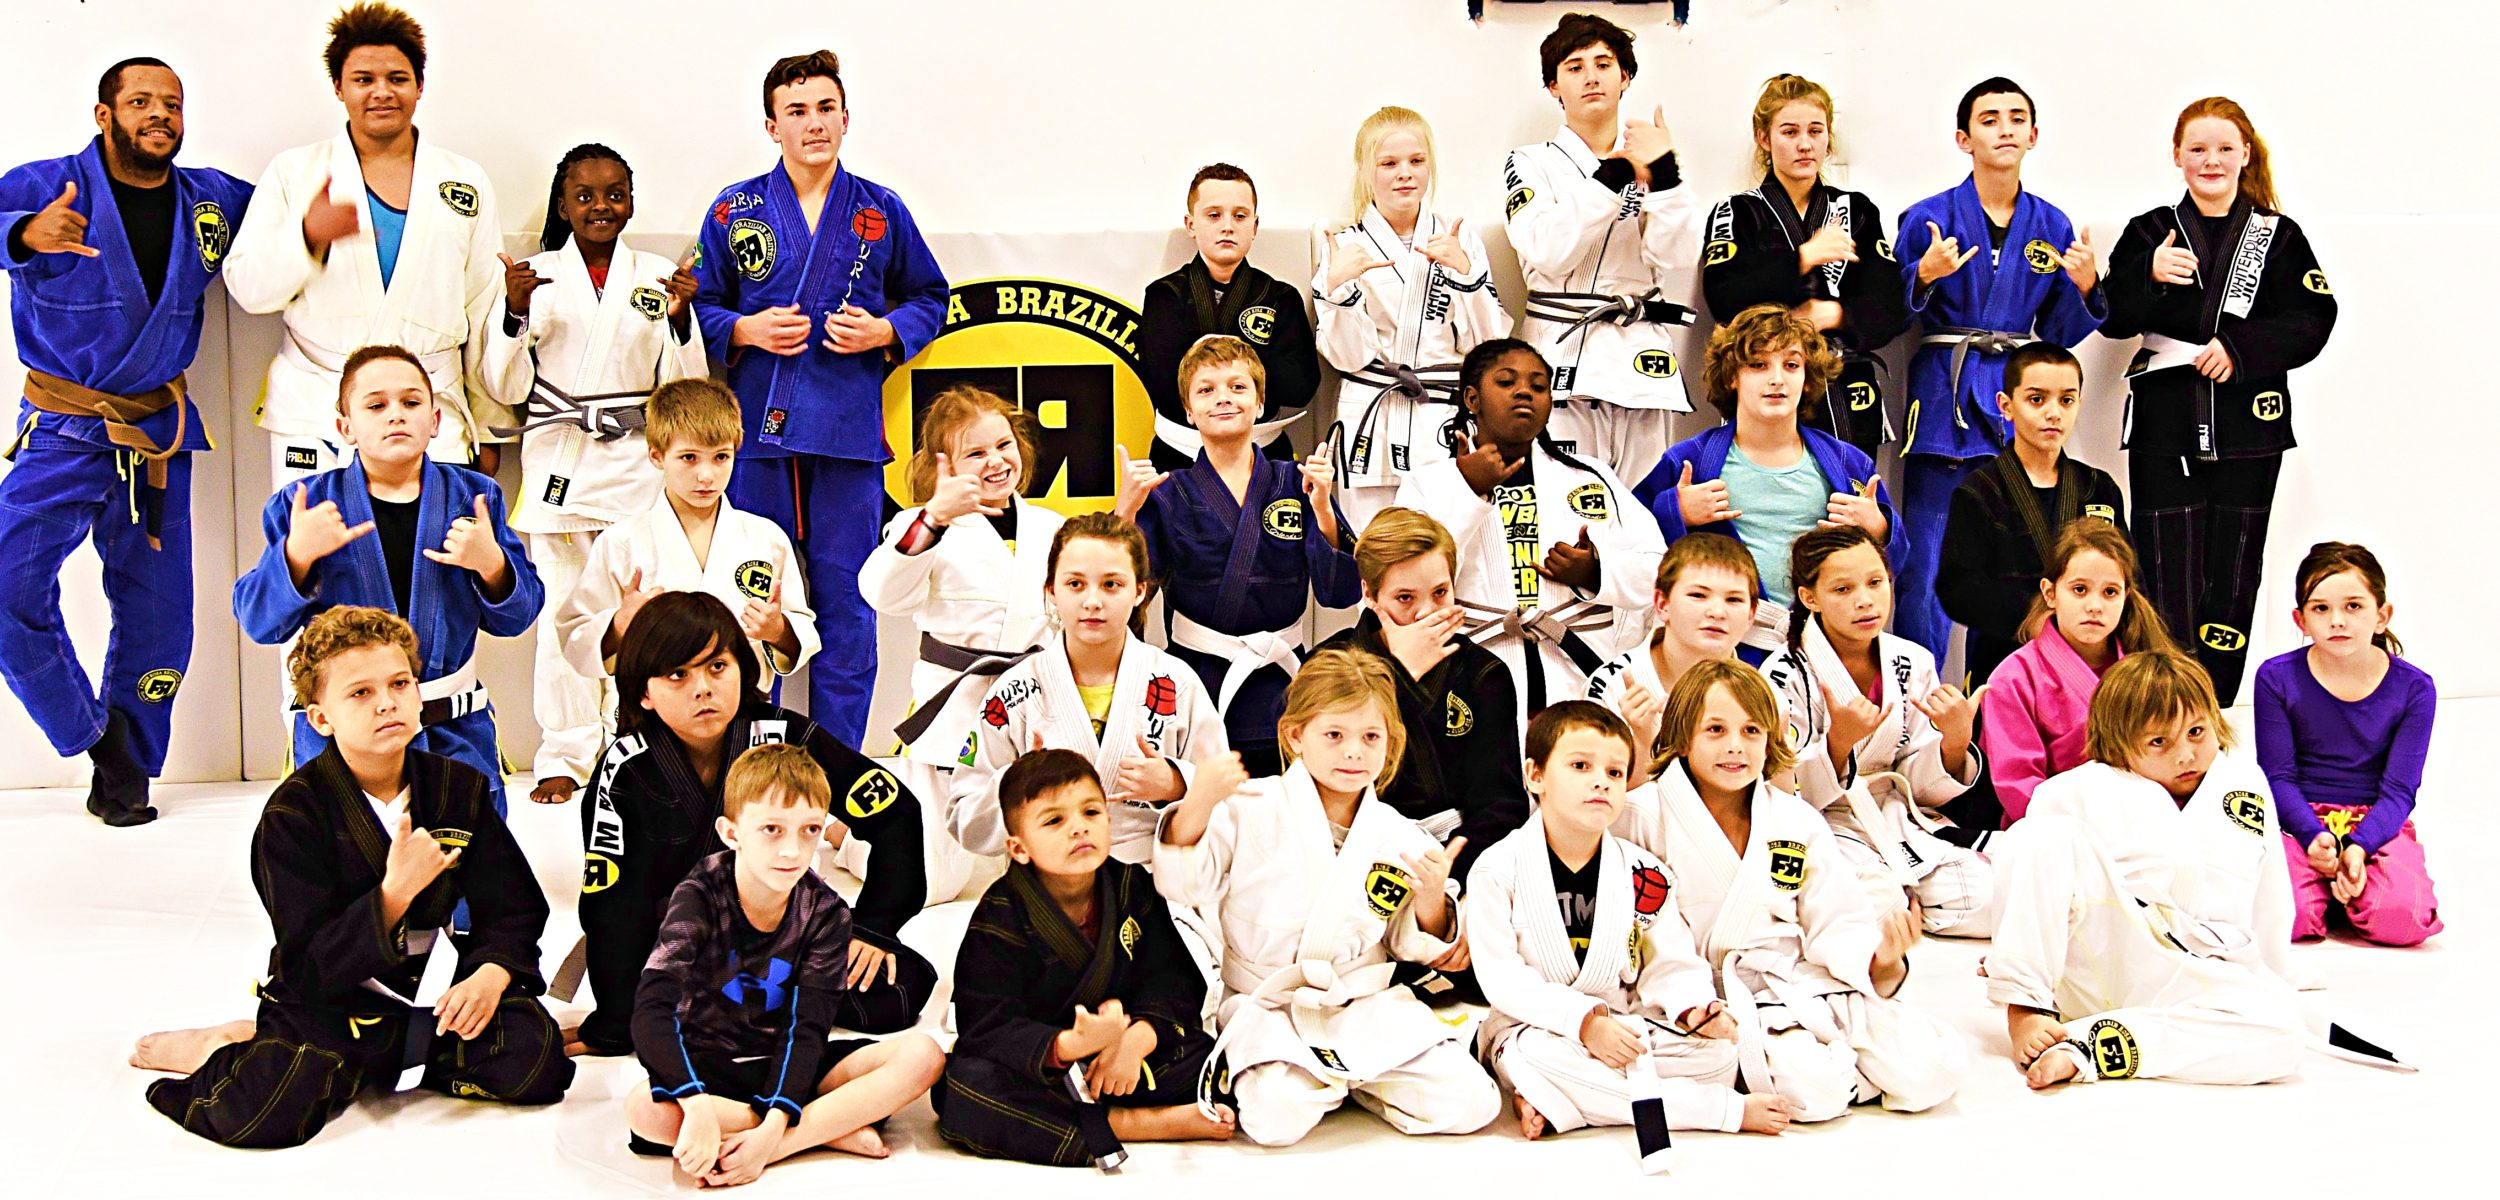 White House Jiu Jitsu Kids